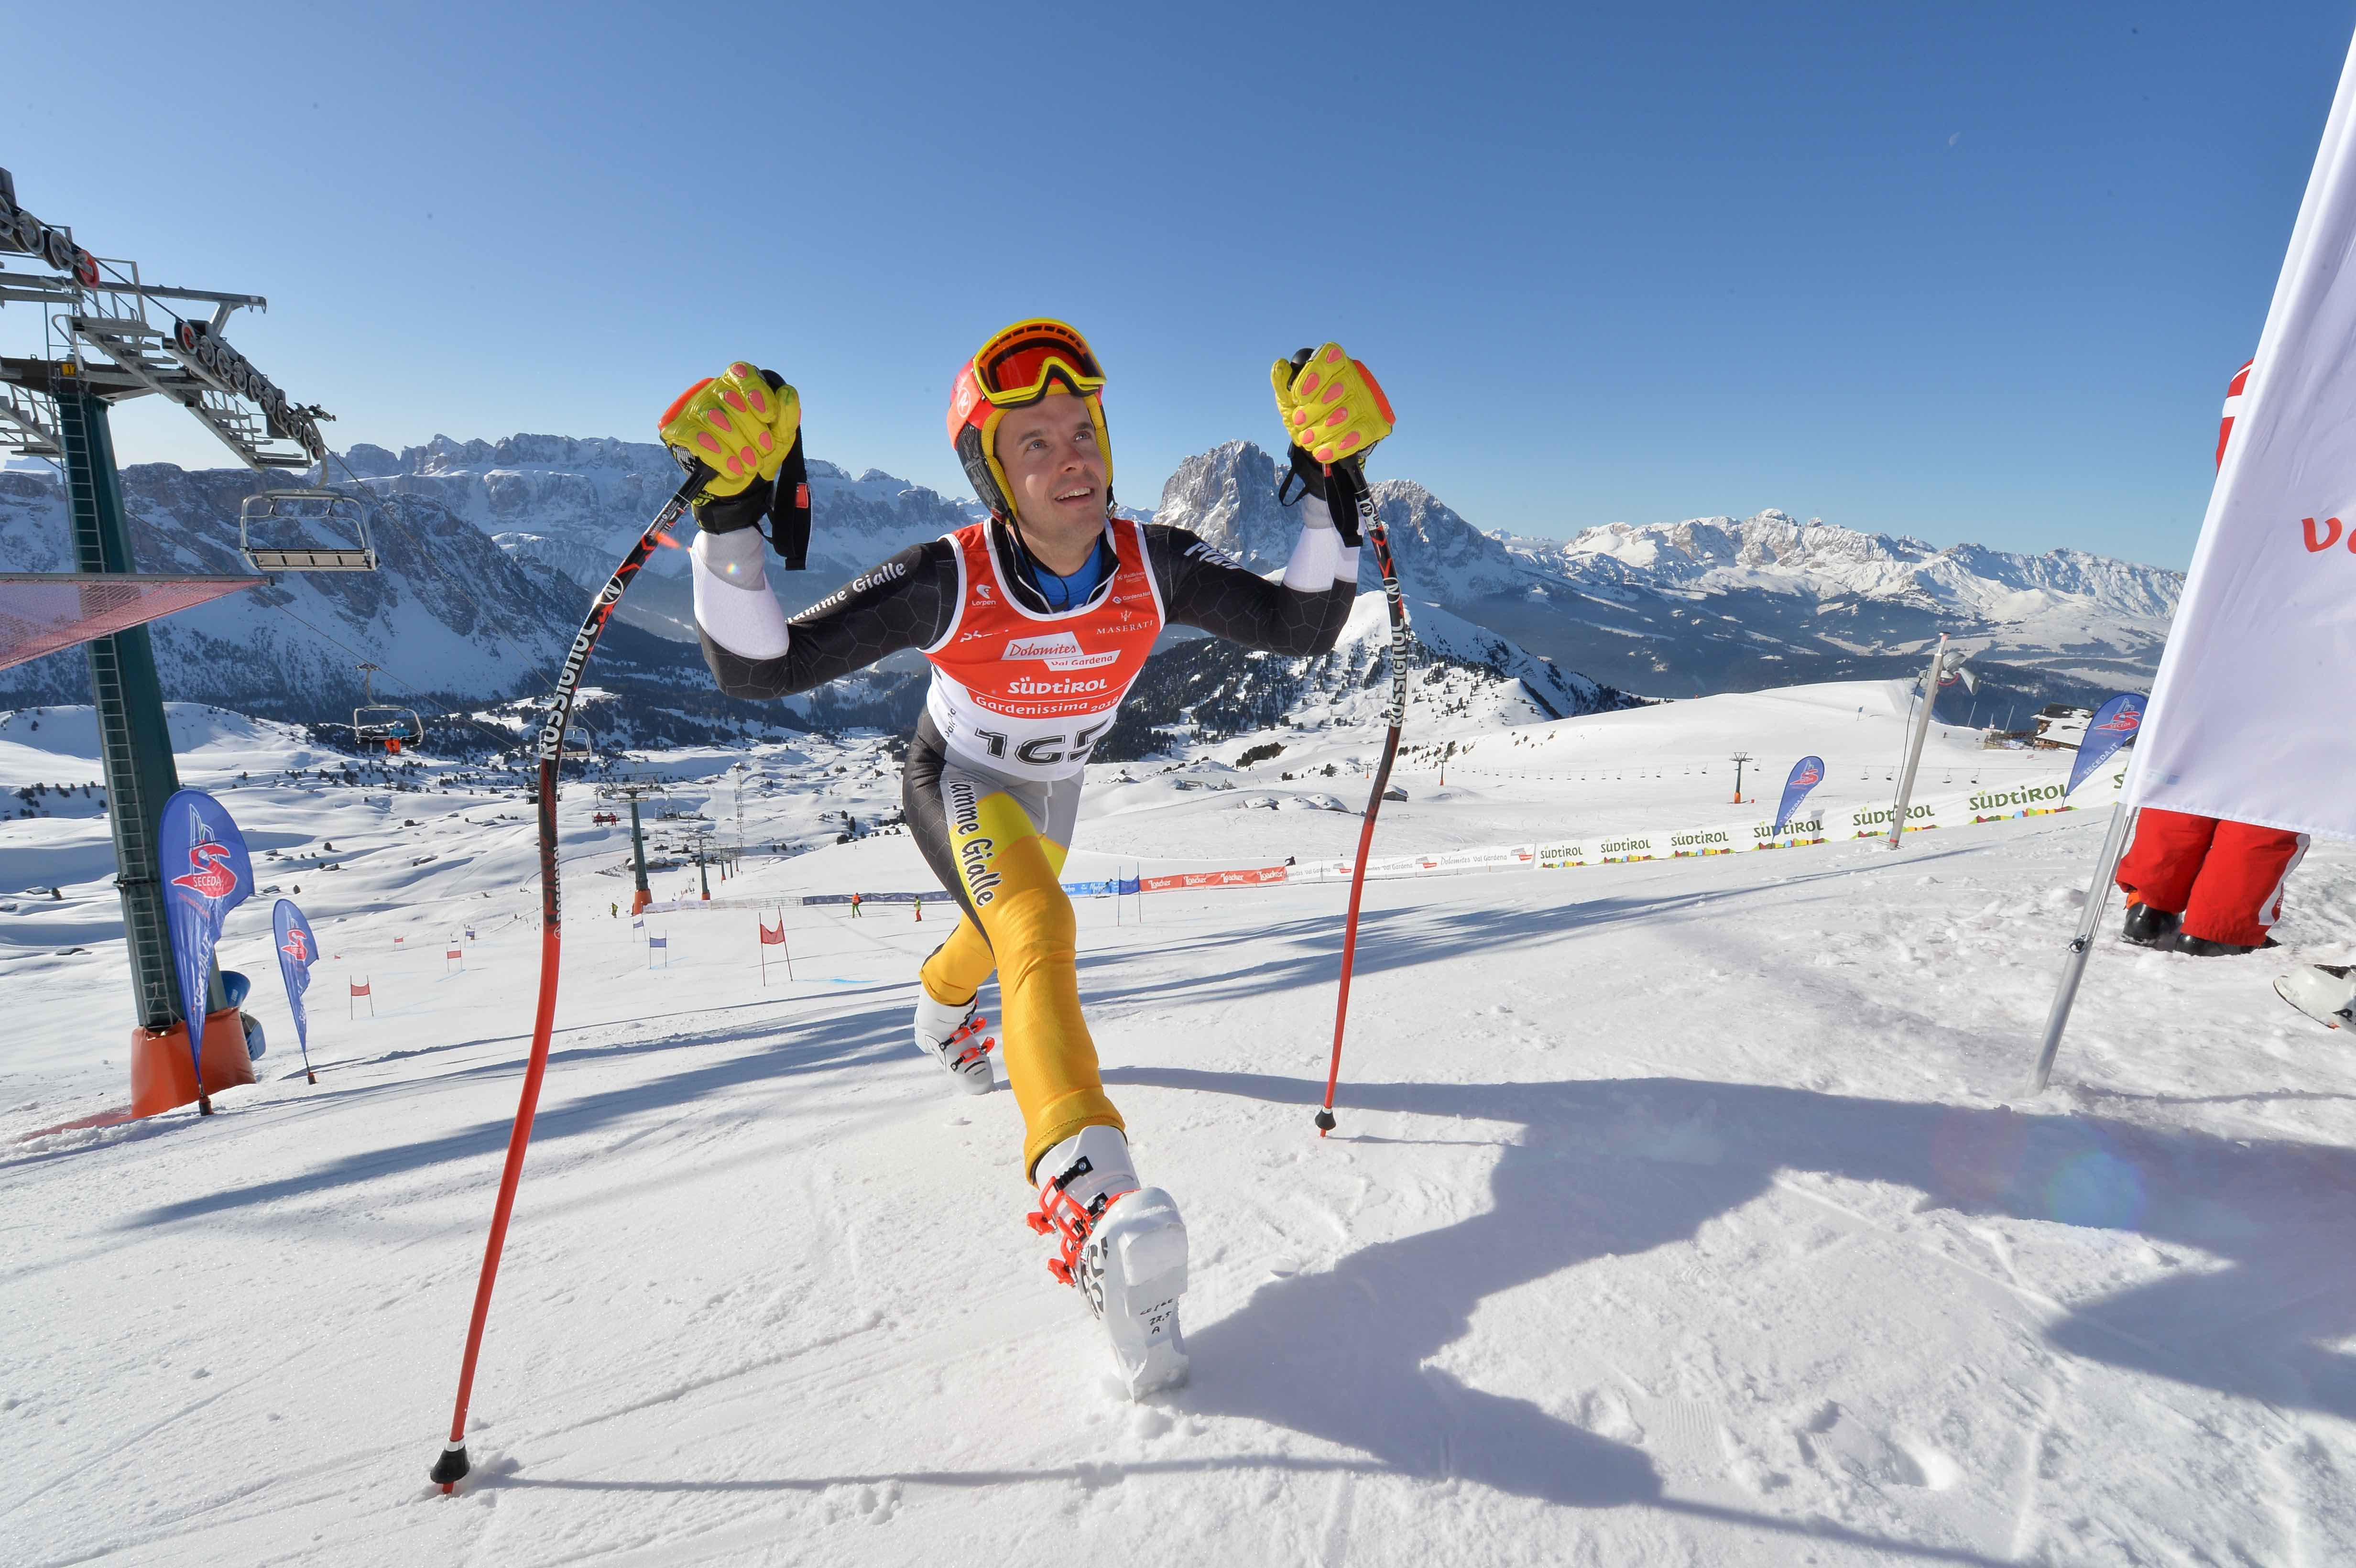 Classifica Gardenissima – In Val Gardena, la grande festa dello sci